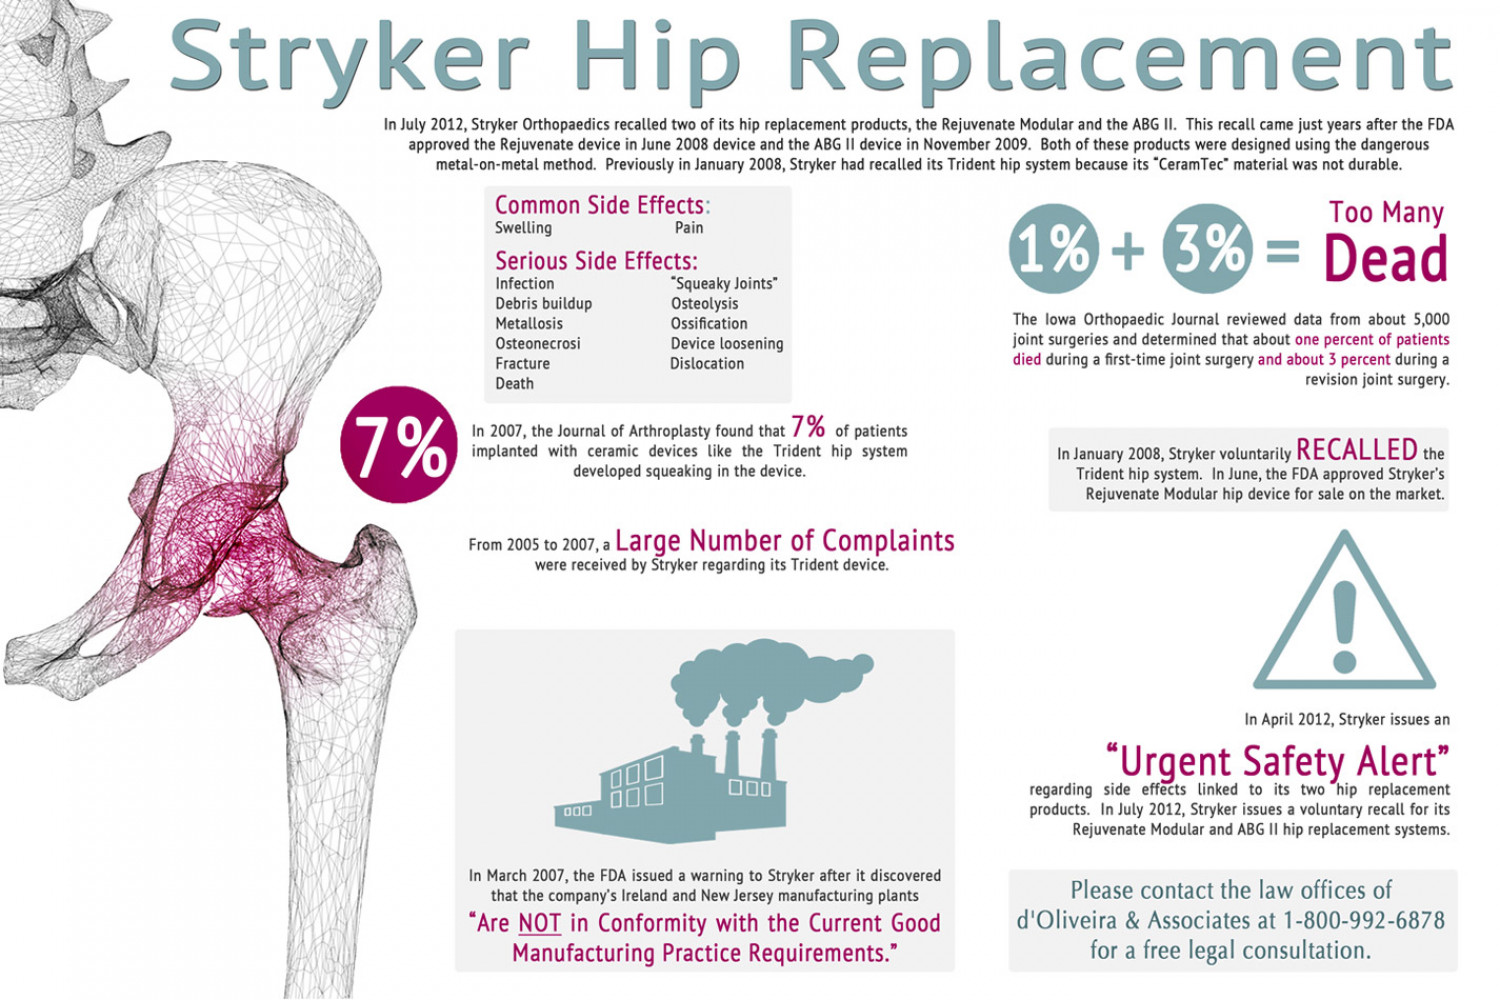 stryker hip replacement Infographic